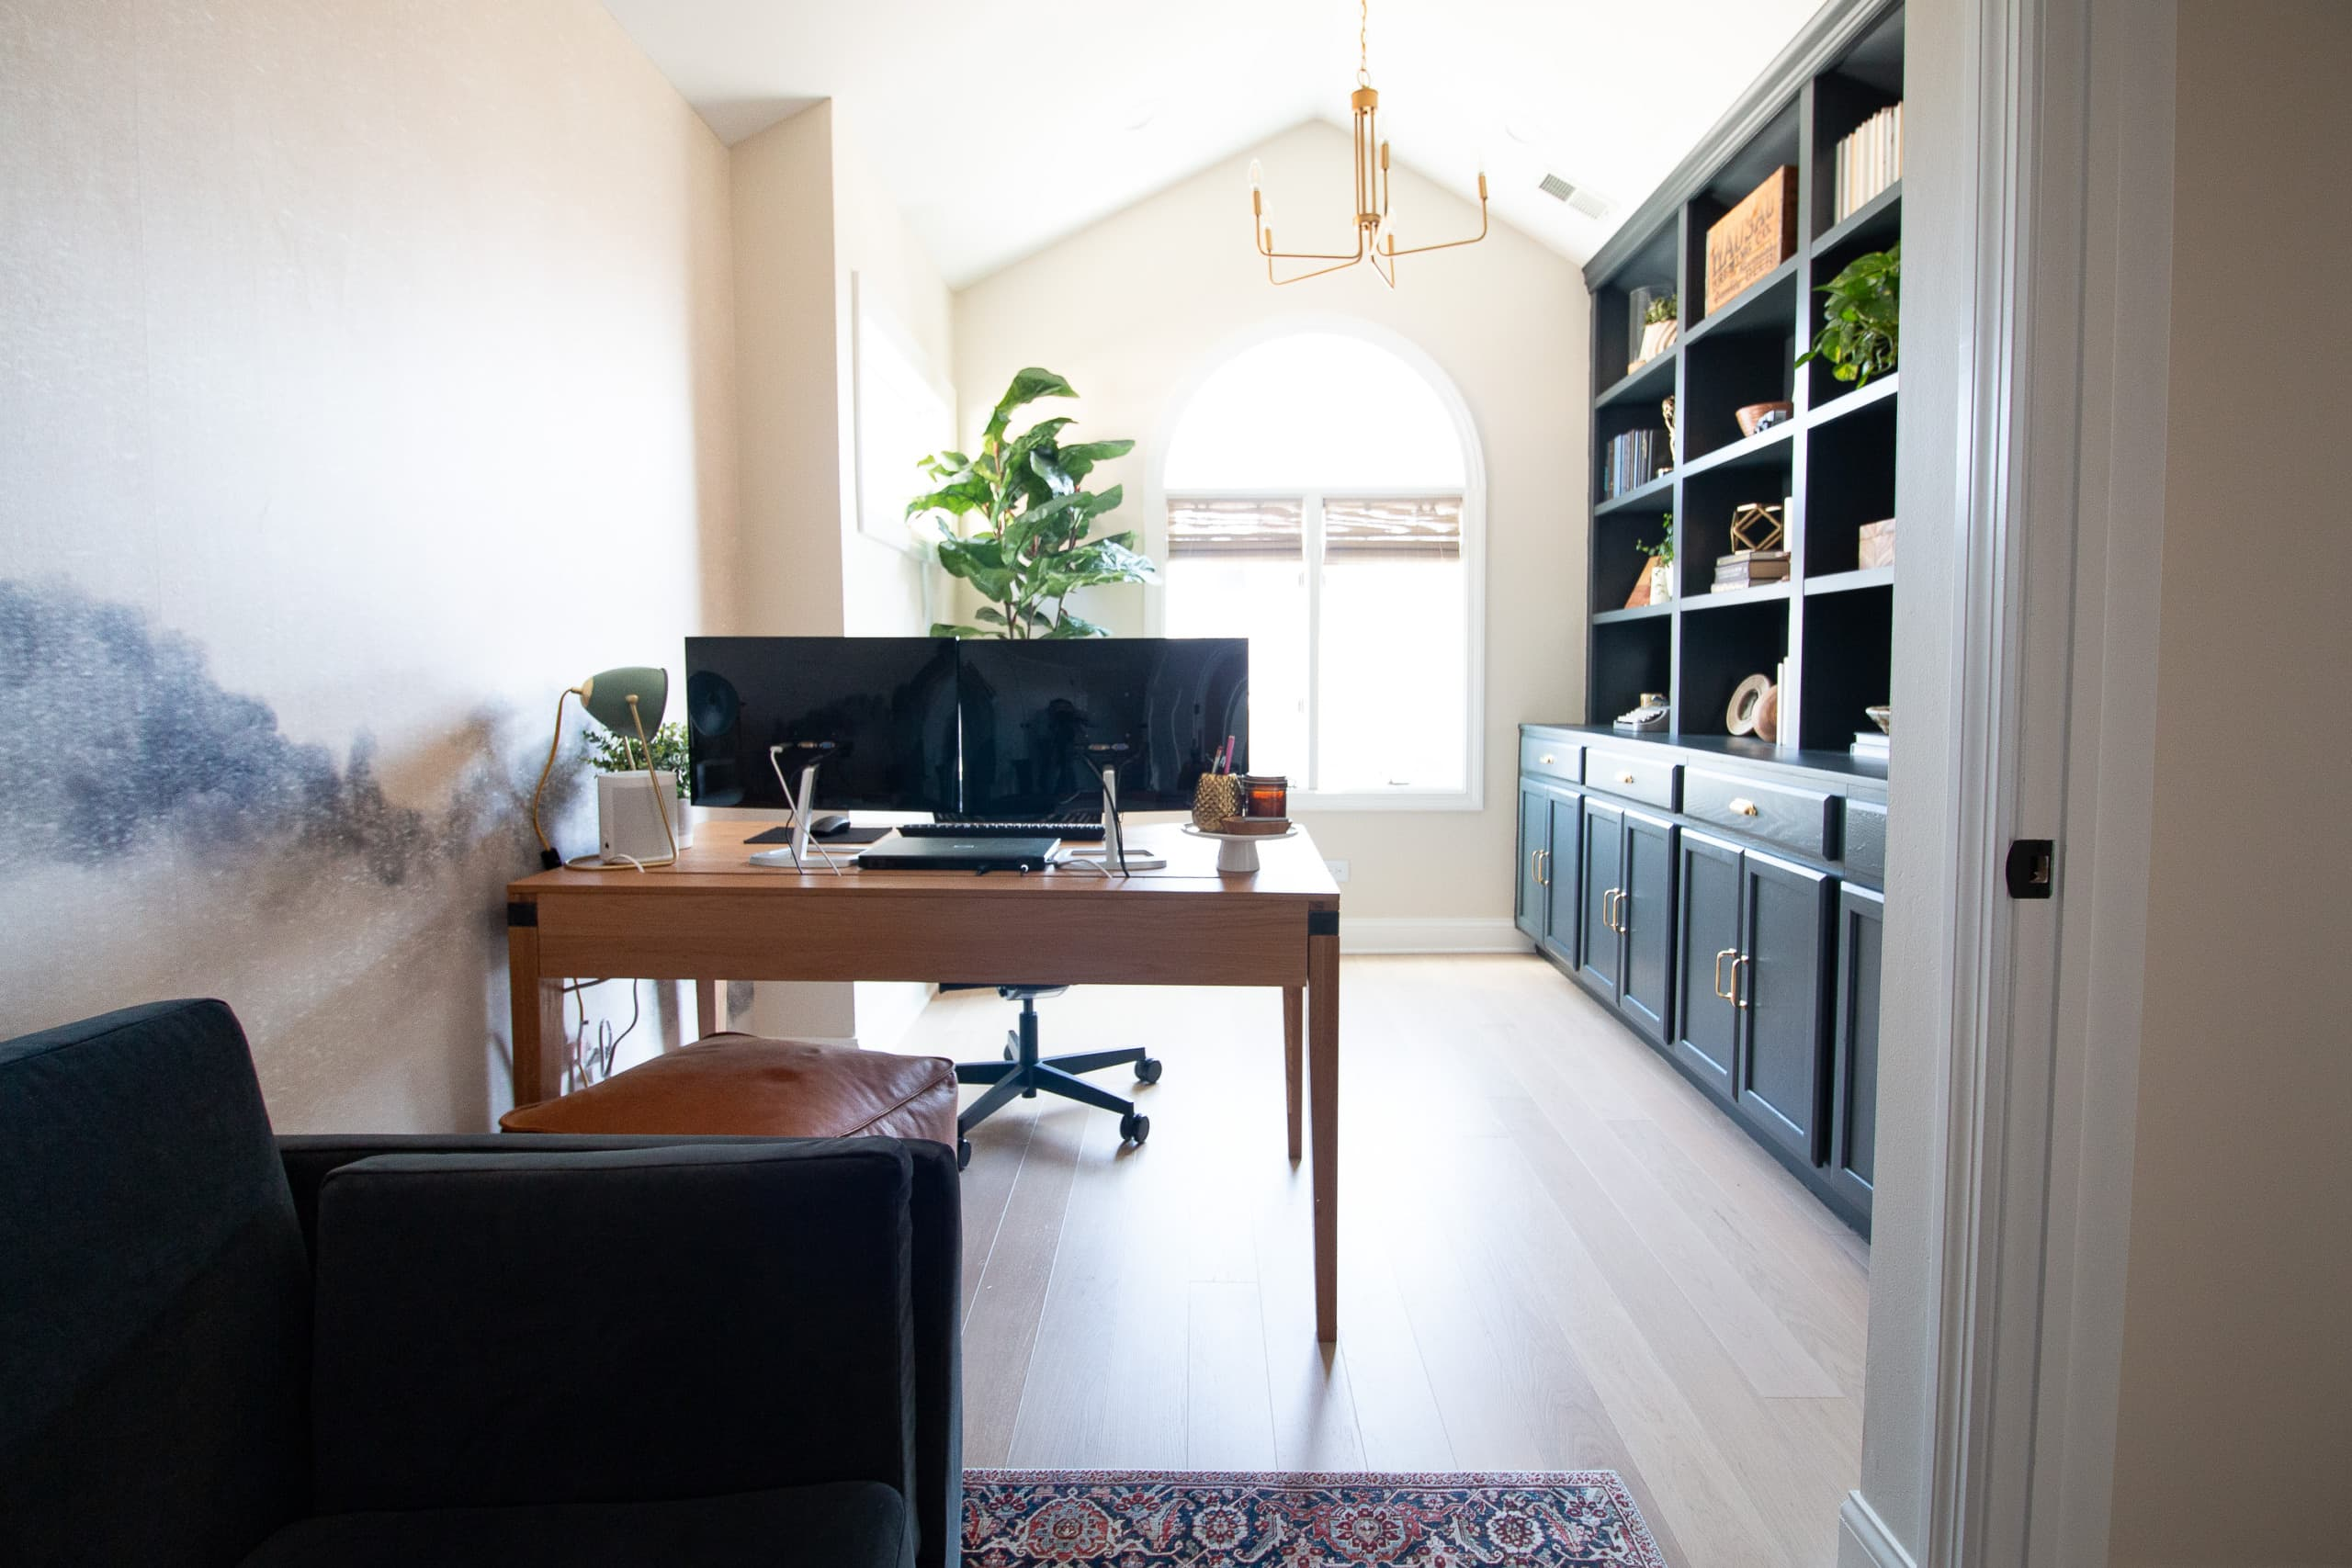 Our new work from home office setup with two monitors